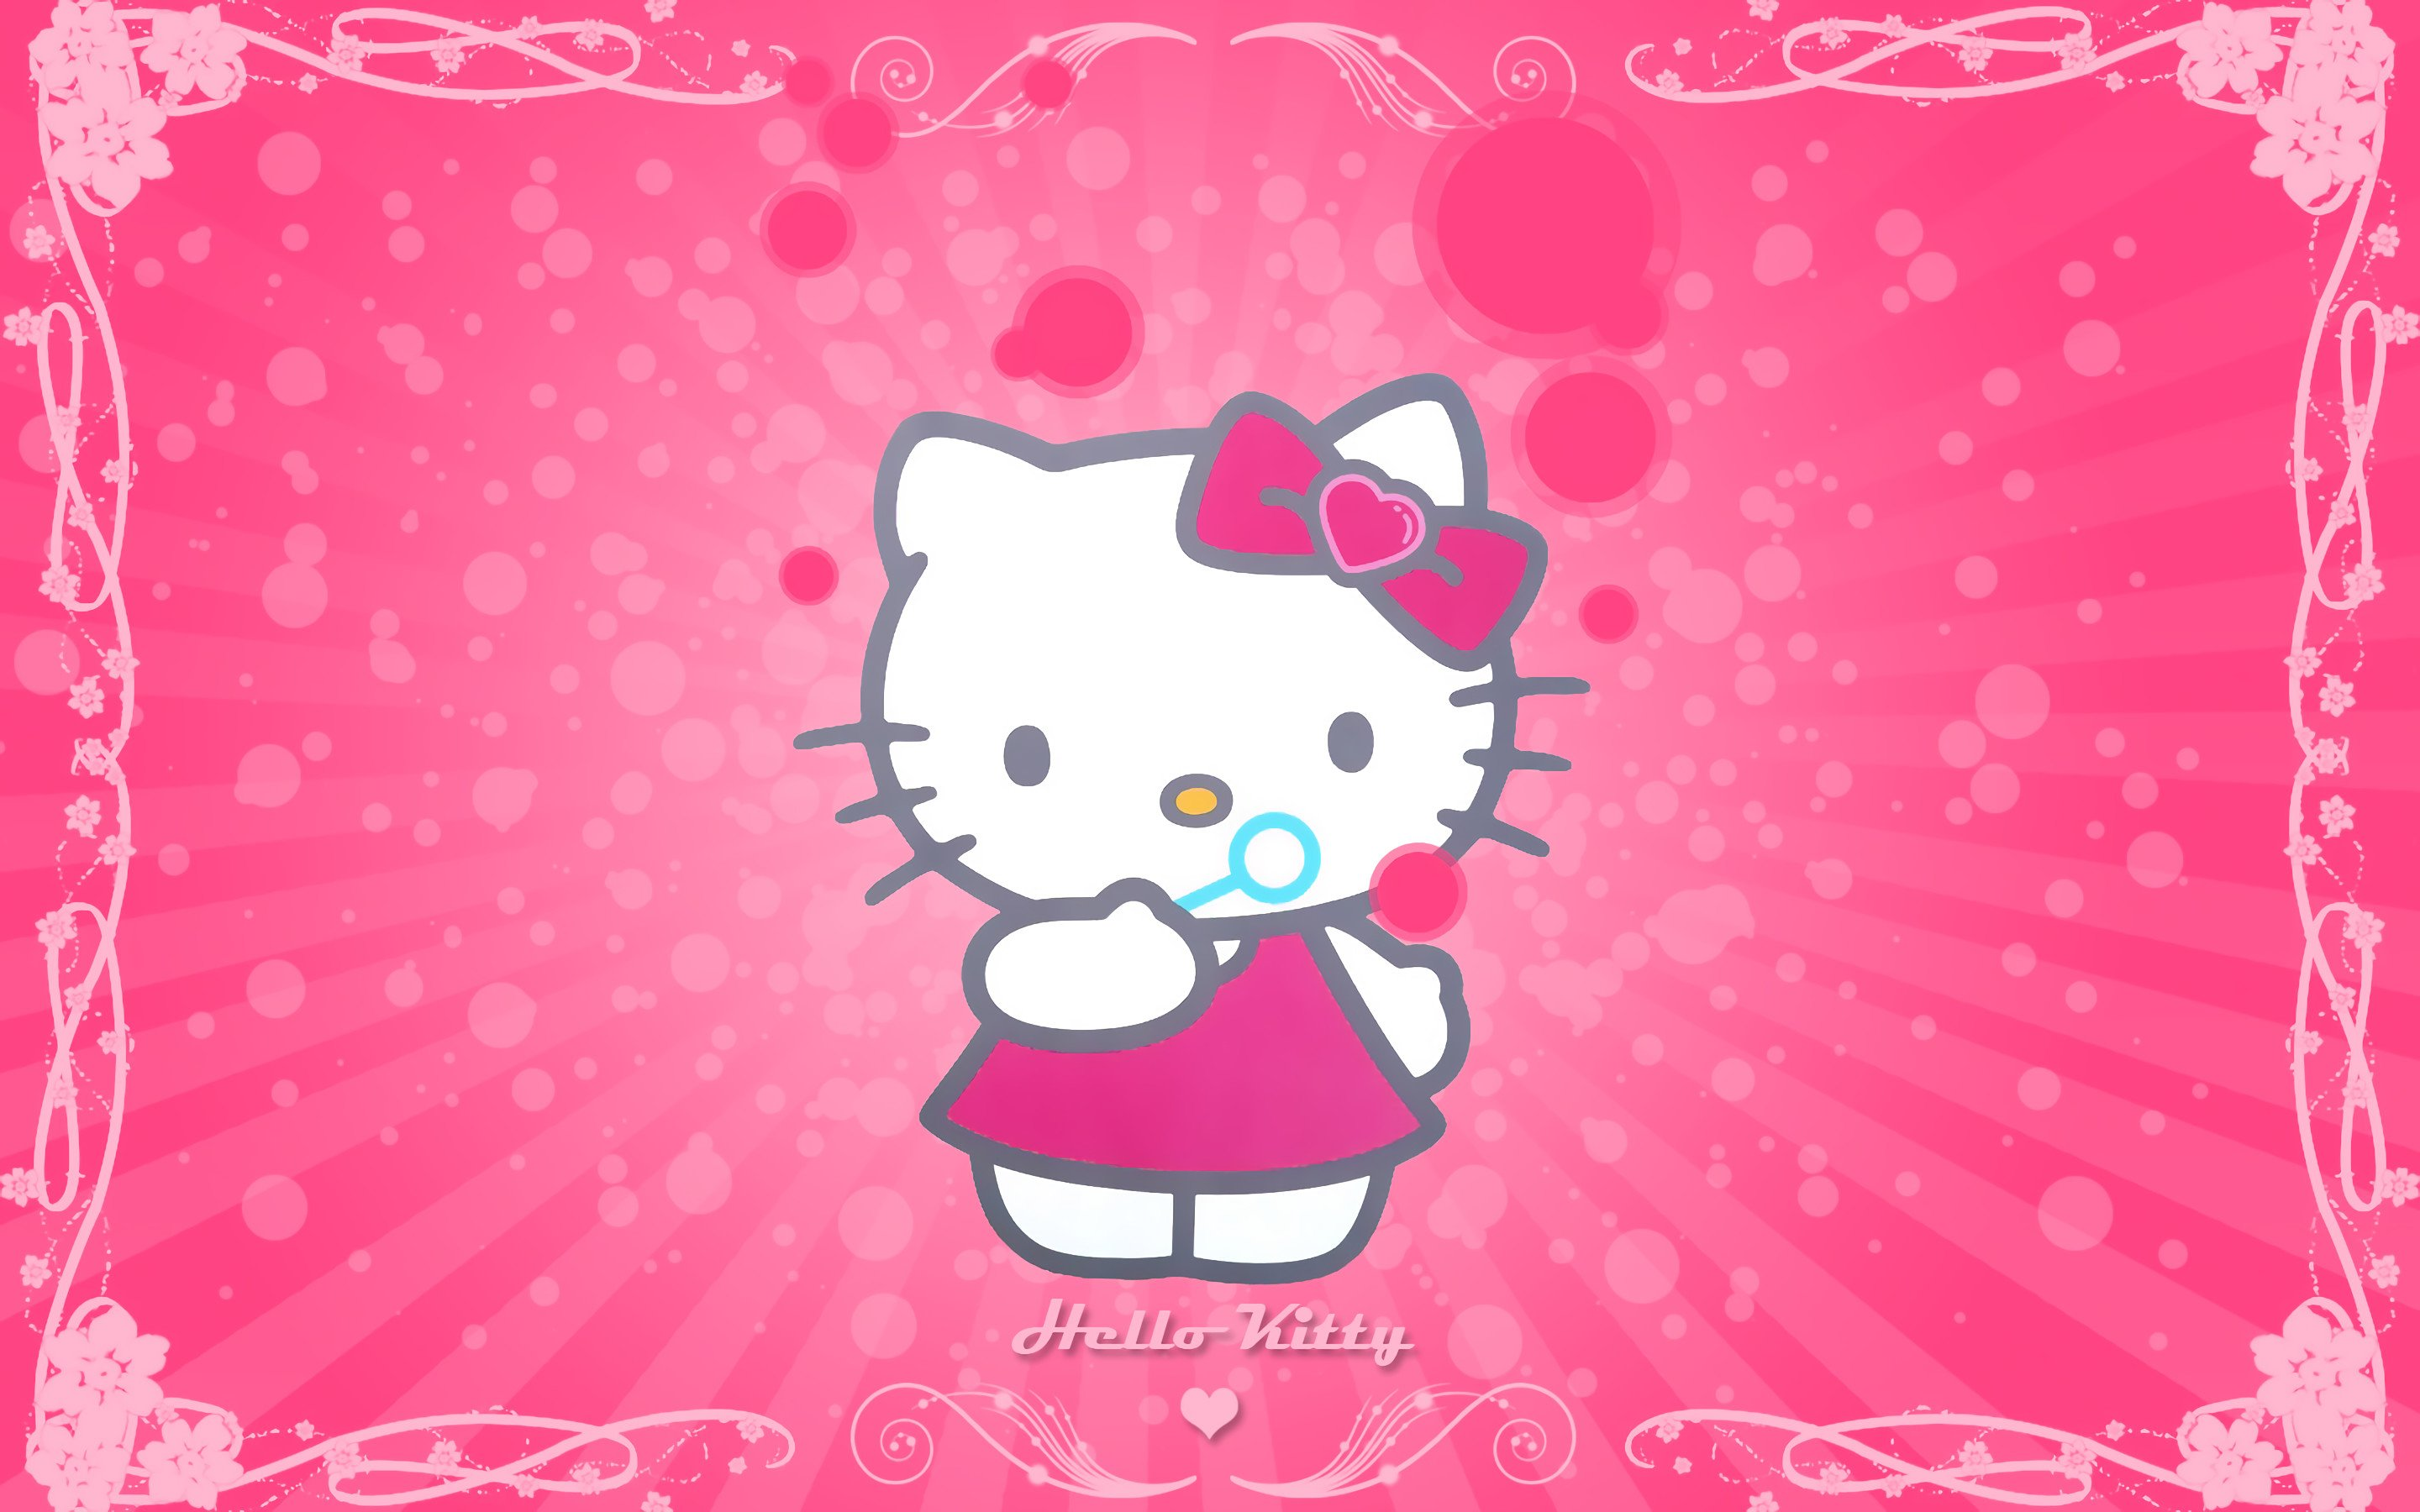 Hello Kitty Desktop Background Wallpapers 61 images 2880x1800